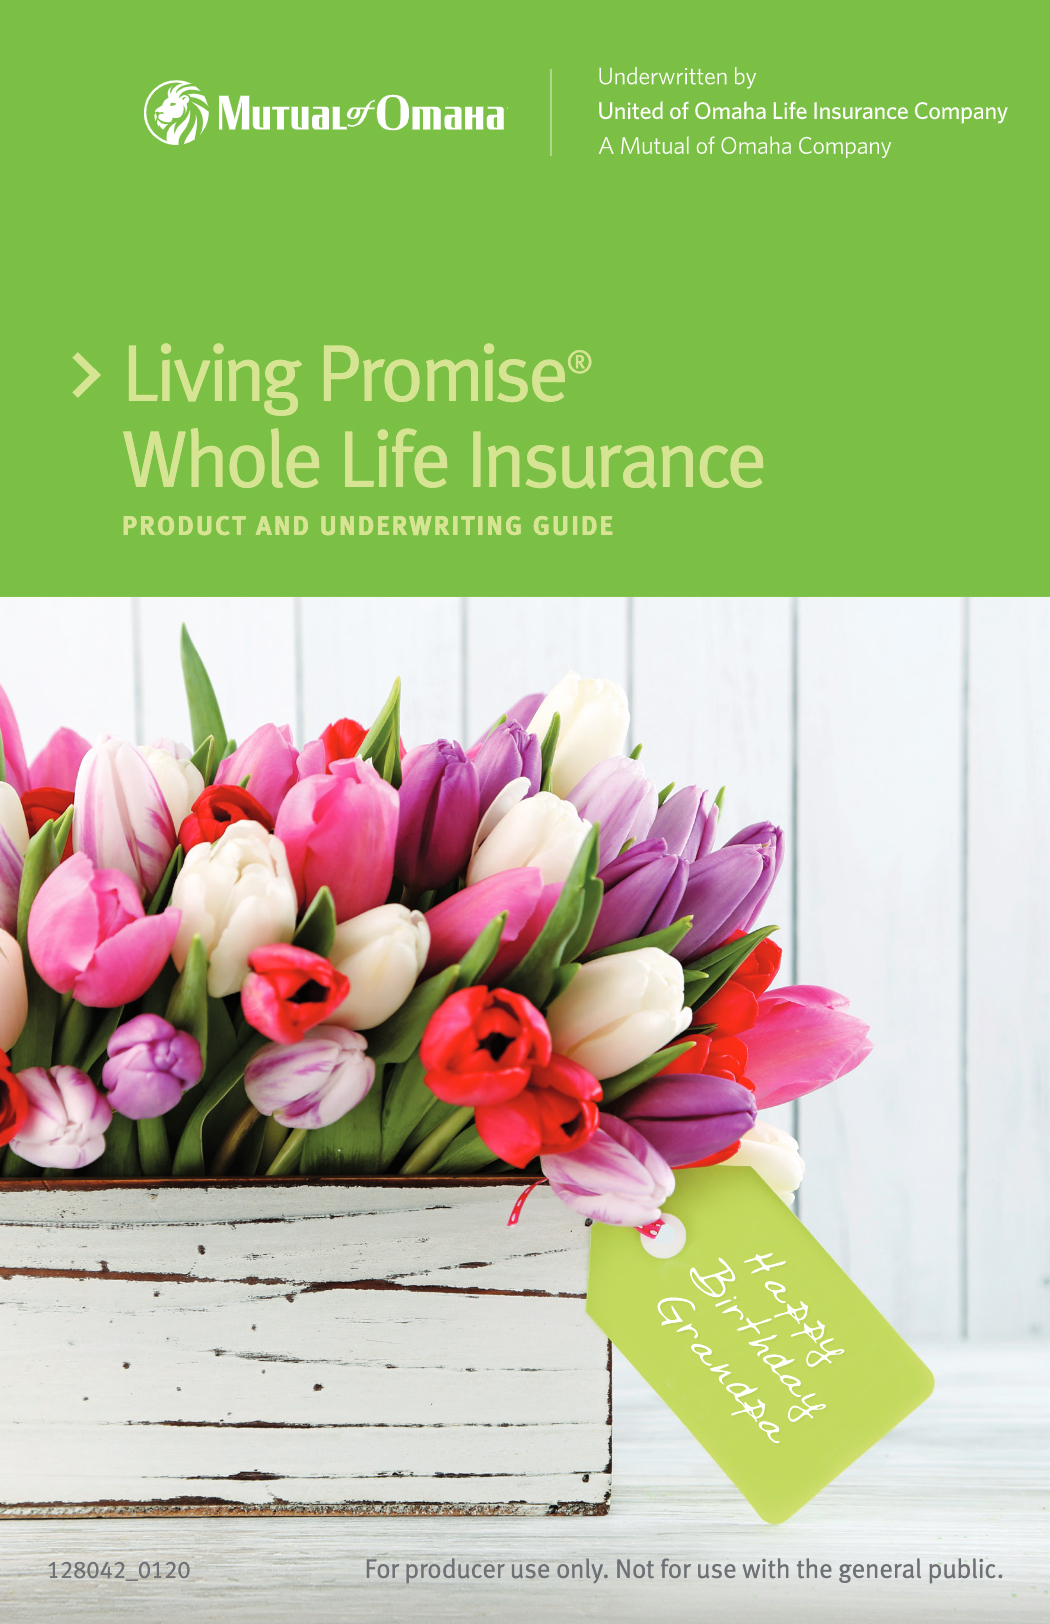 Living Promise Product and Underwriting Guide